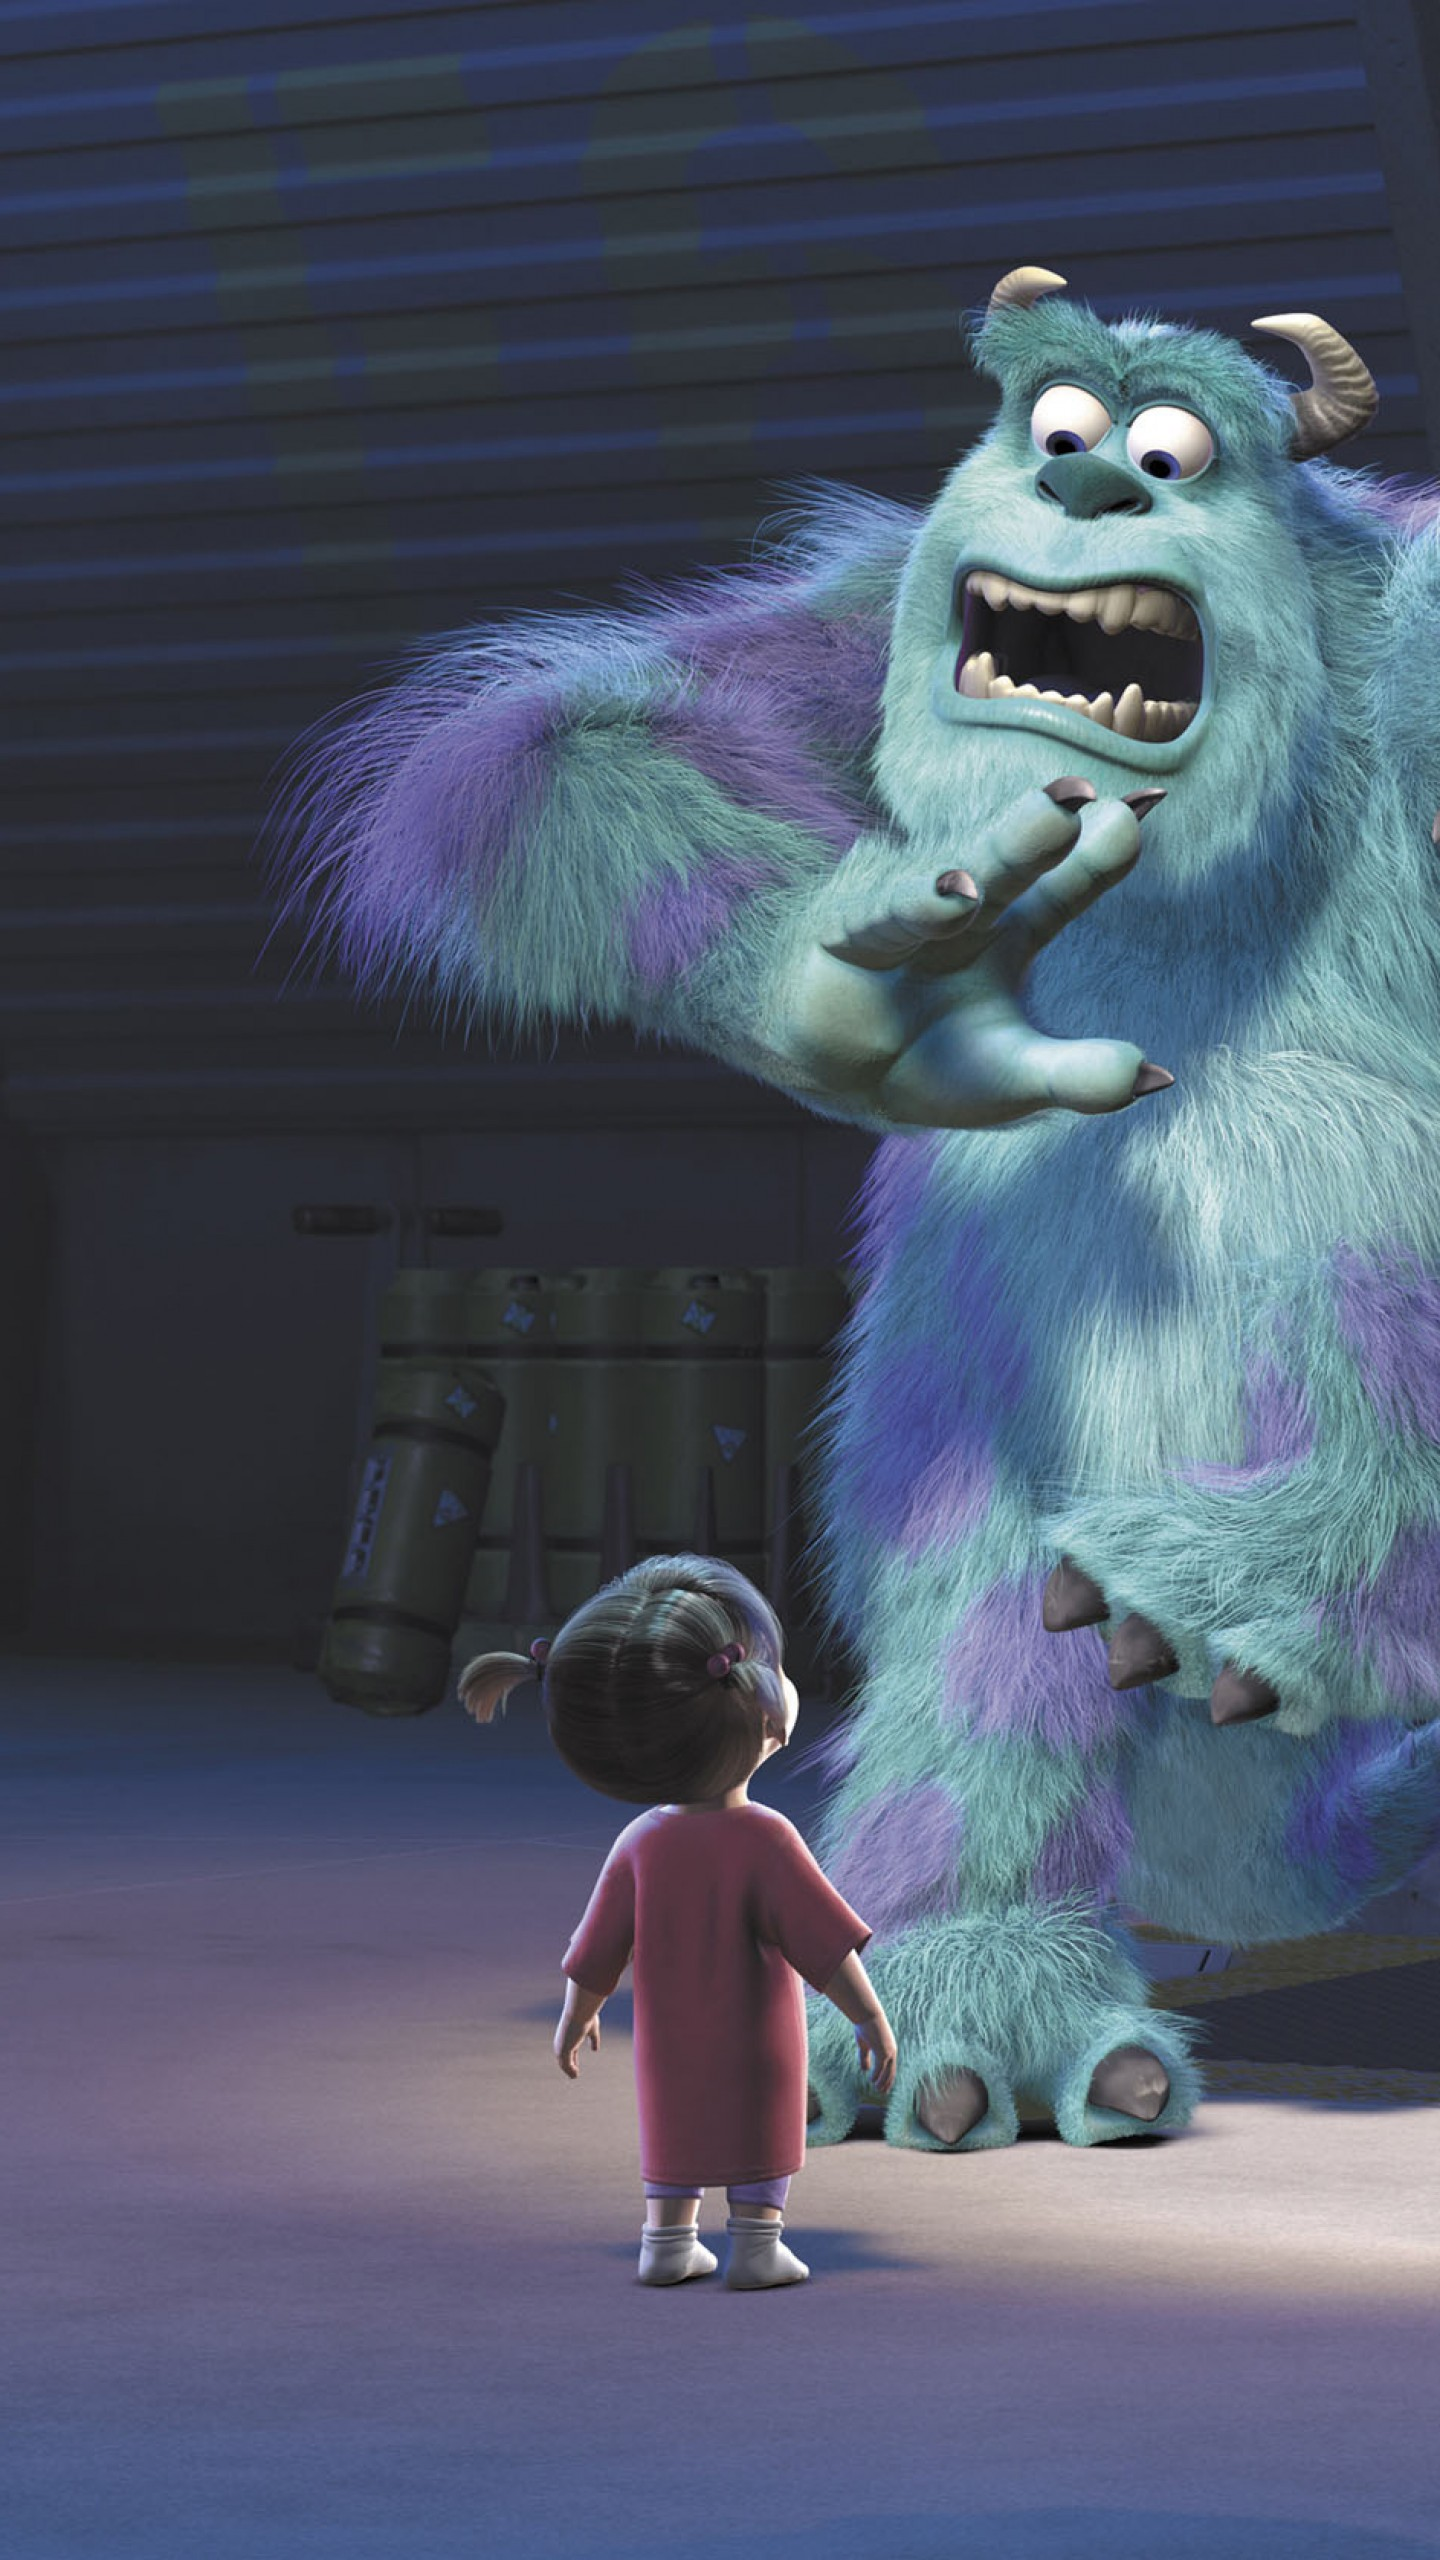 Monster Inc Boo Wallpaper Posted By Samantha Simpson